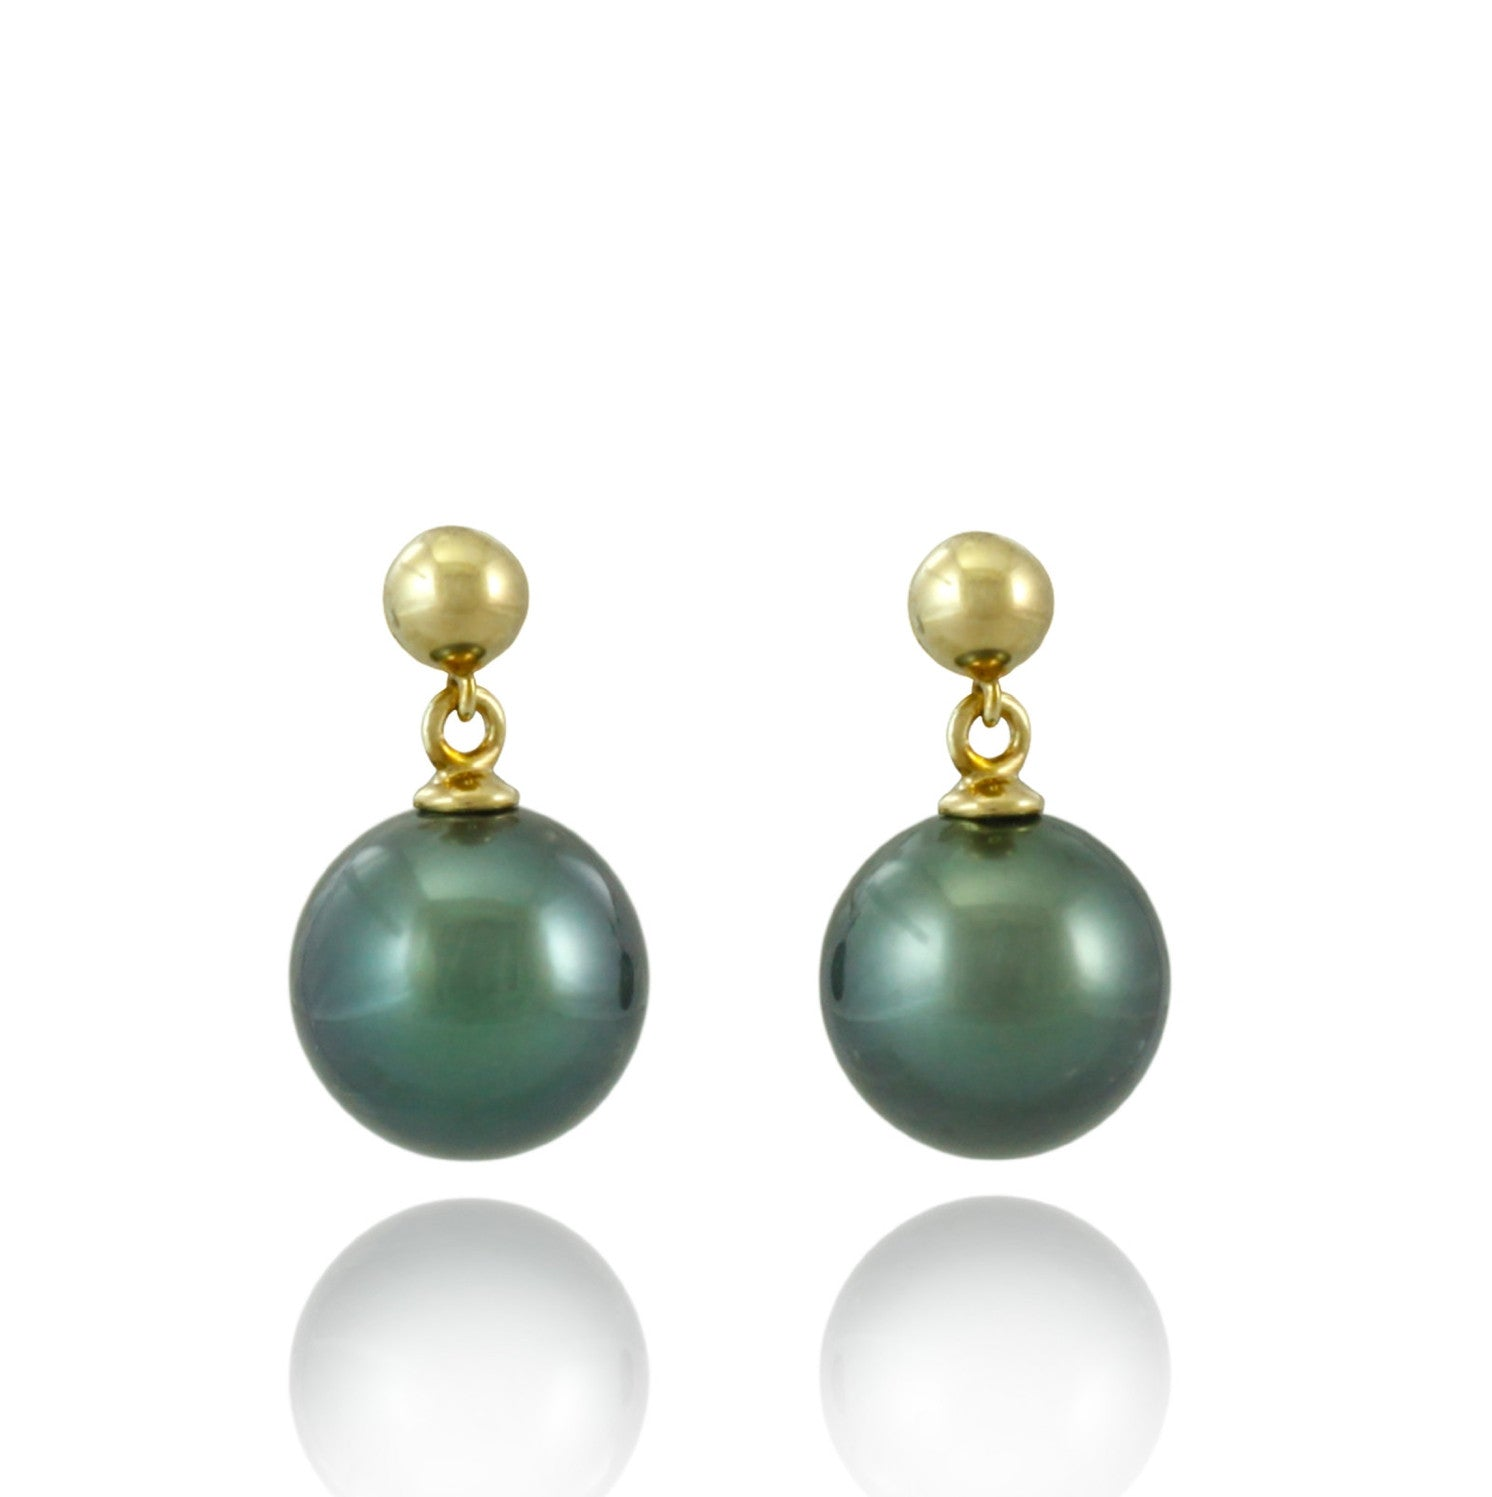 Tahitian pearl earrings in gold plated - Timeless Elegance - EAGPPE00009